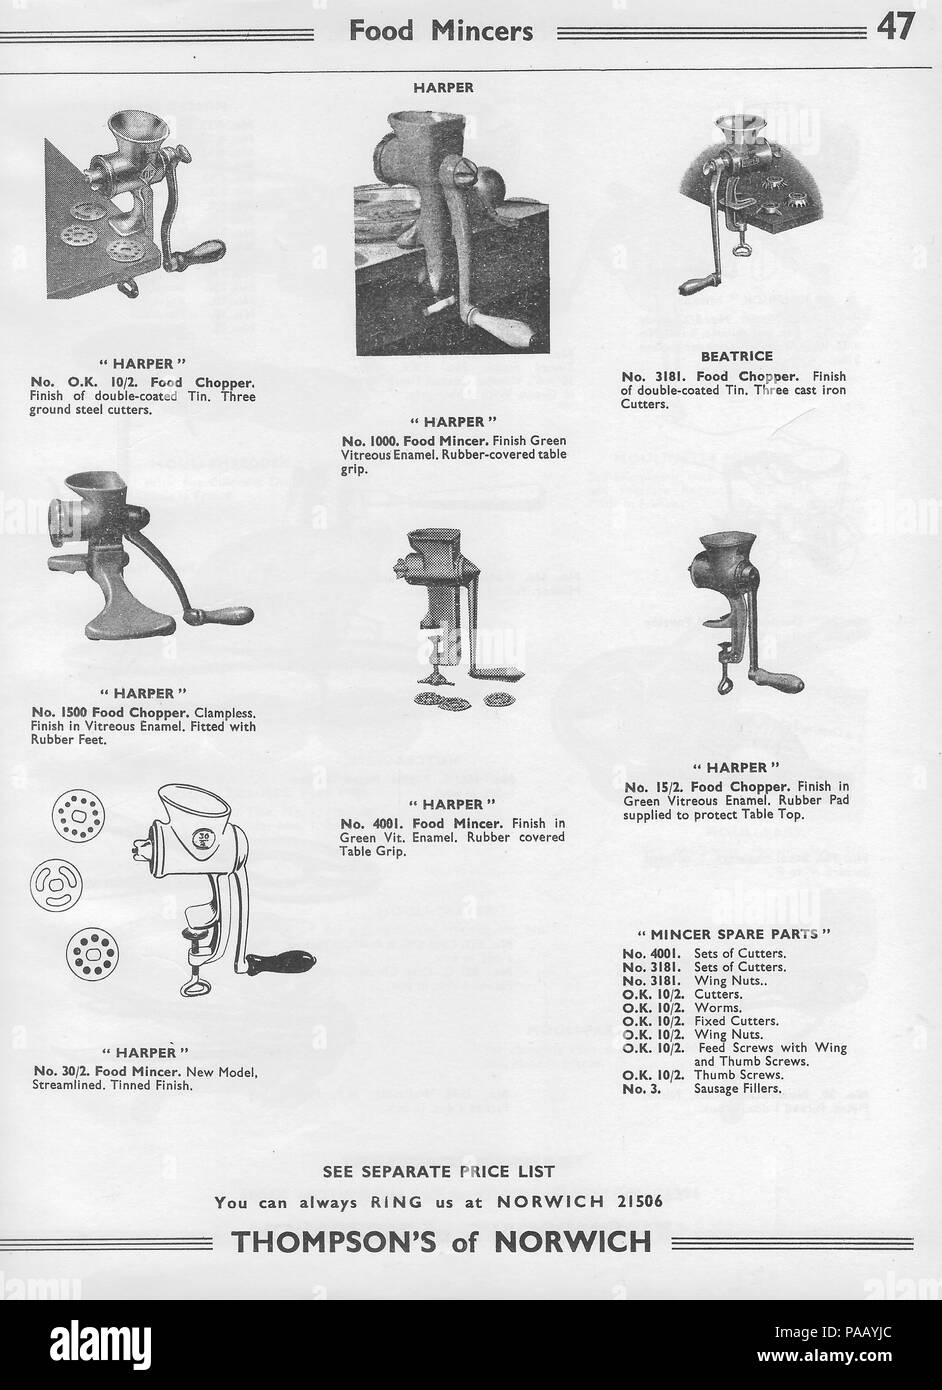 General wholesale catalogue hardware factors H. Thompson & Sons Ltd, Chalk  Hill Works, Norwich, England, UK 1940s 1950s retro vintage household  products ...